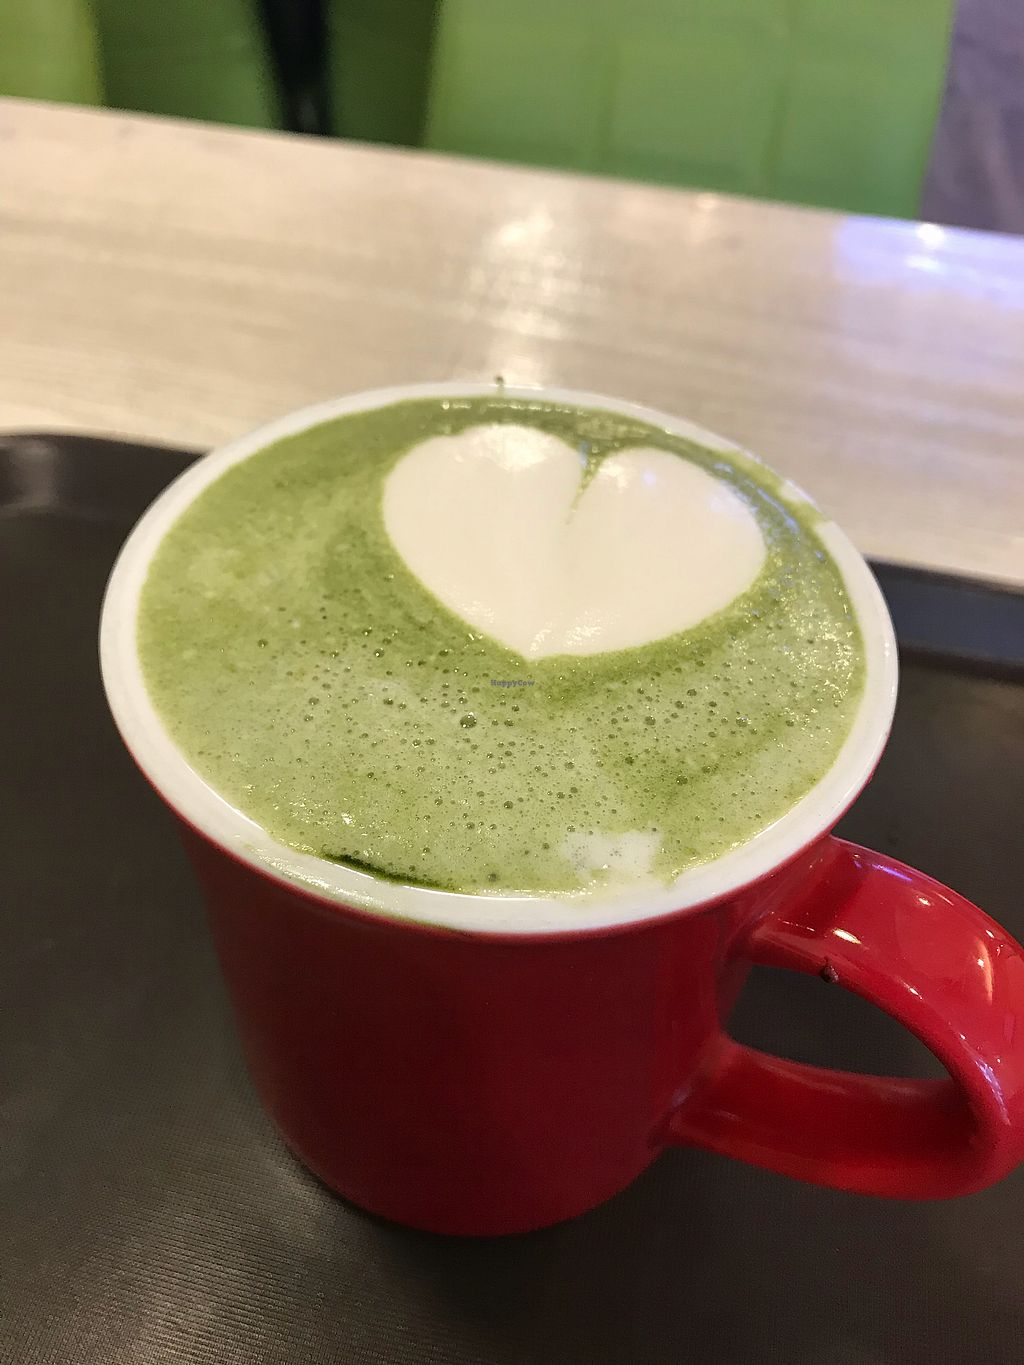 "Photo of Loving Hut Gangnam-gu - 러빙헛  by <a href=""/members/profile/JeanTay"">JeanTay</a> <br/>Awesome green tea latte!  <br/> April 23, 2018  - <a href='/contact/abuse/image/23907/389712'>Report</a>"